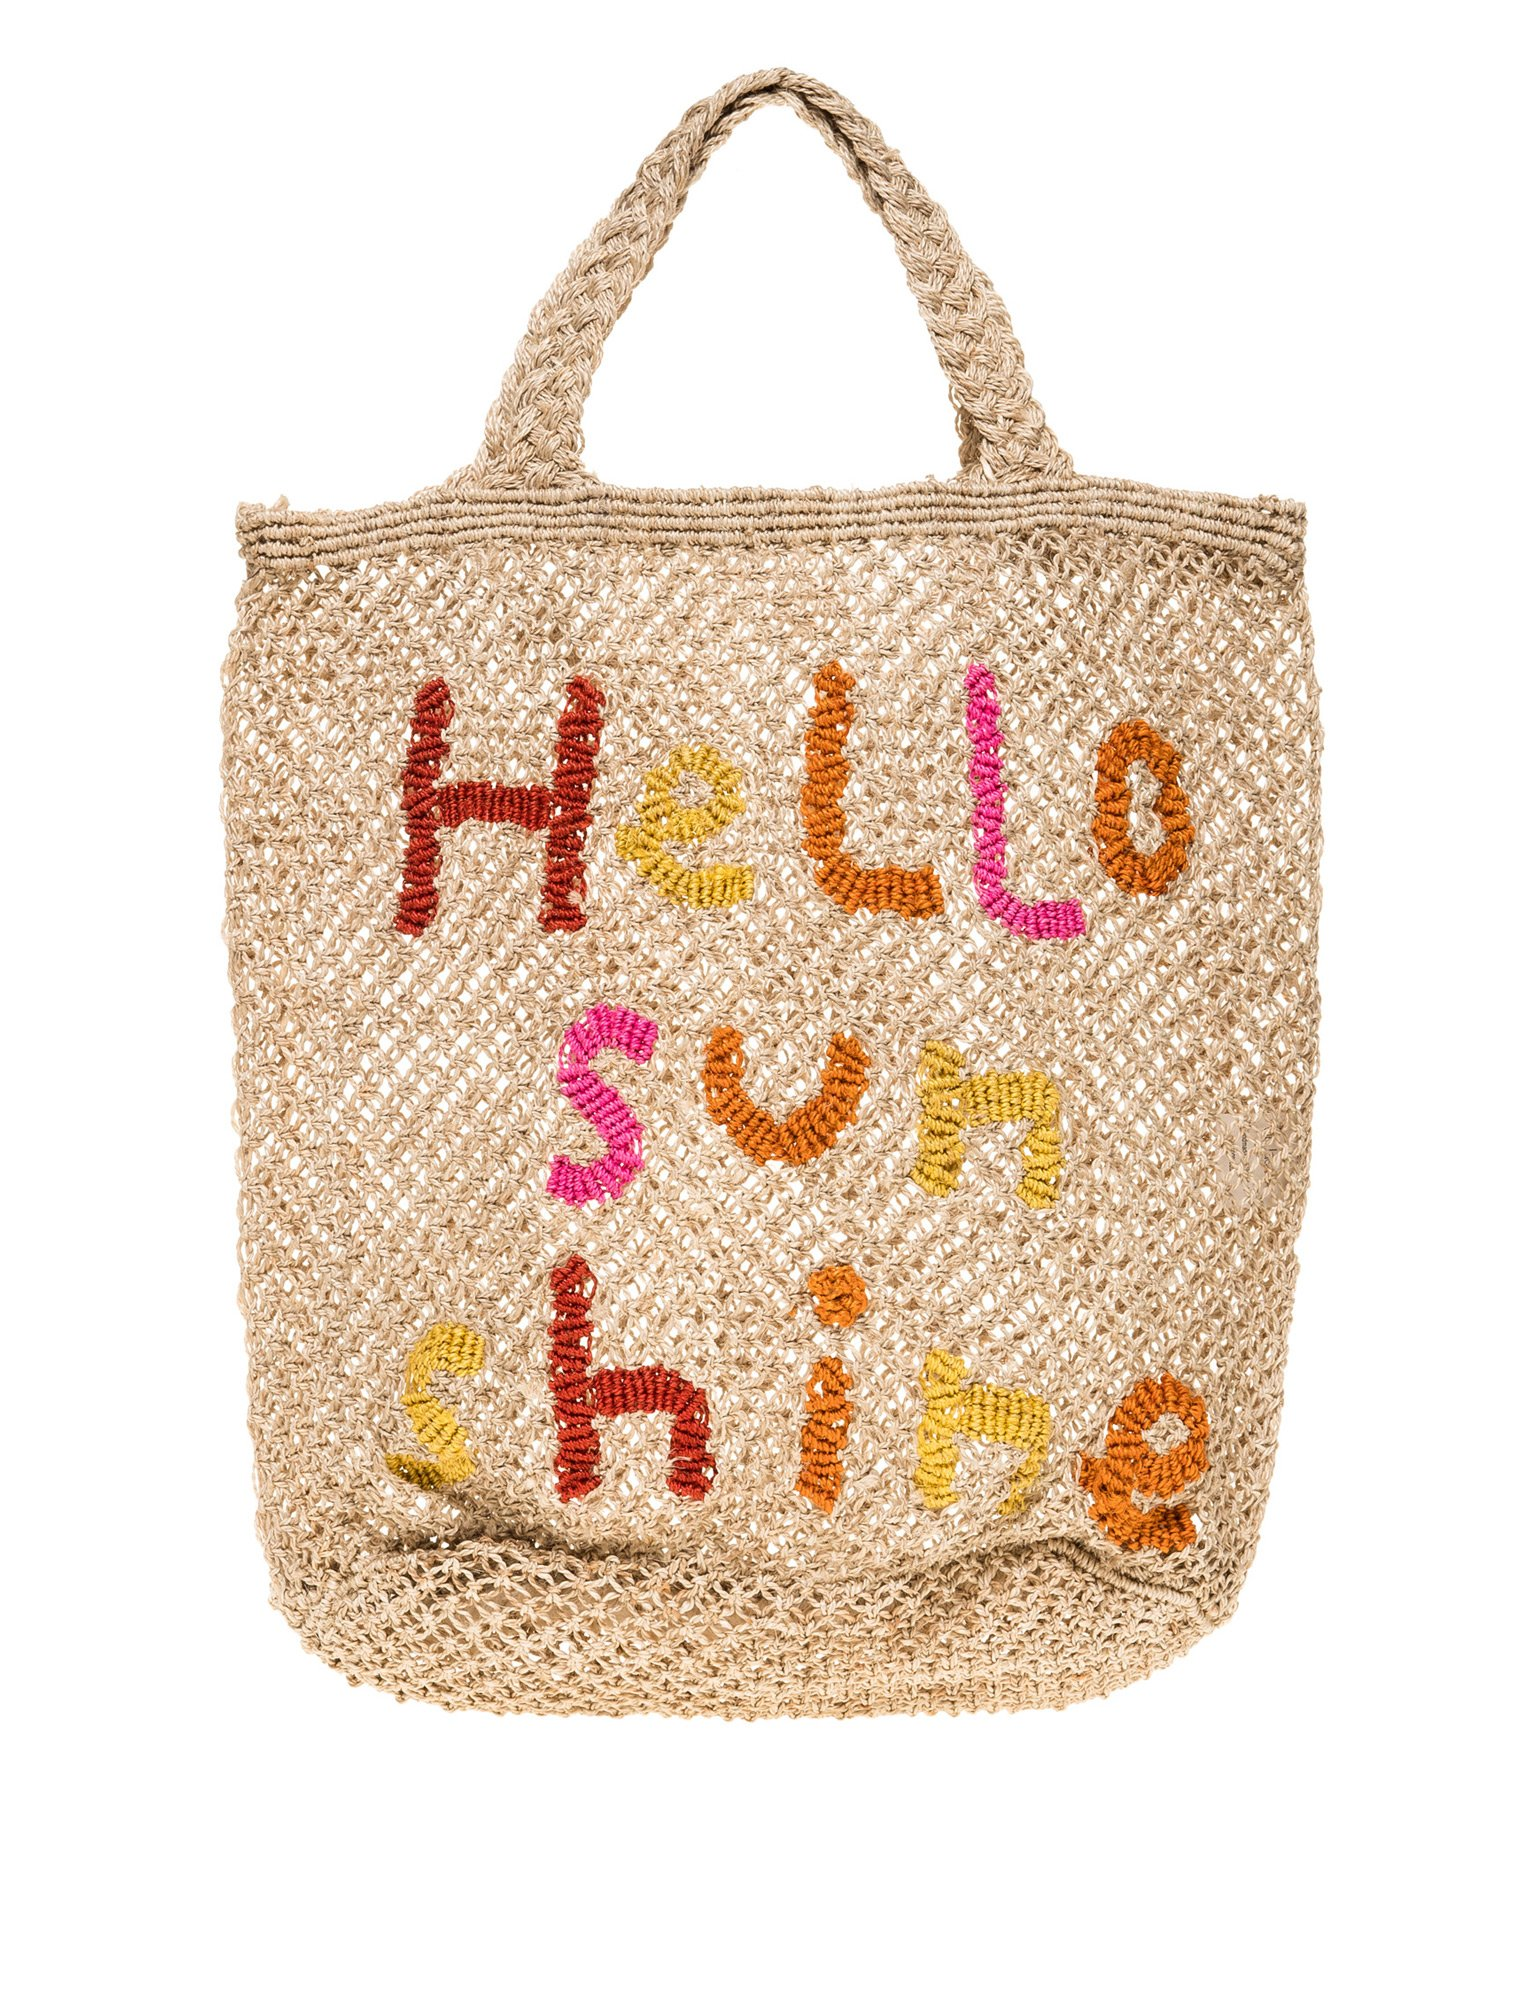 The Jacksons Women's Hello Sunshine Women's Beige Jute Bag Beige